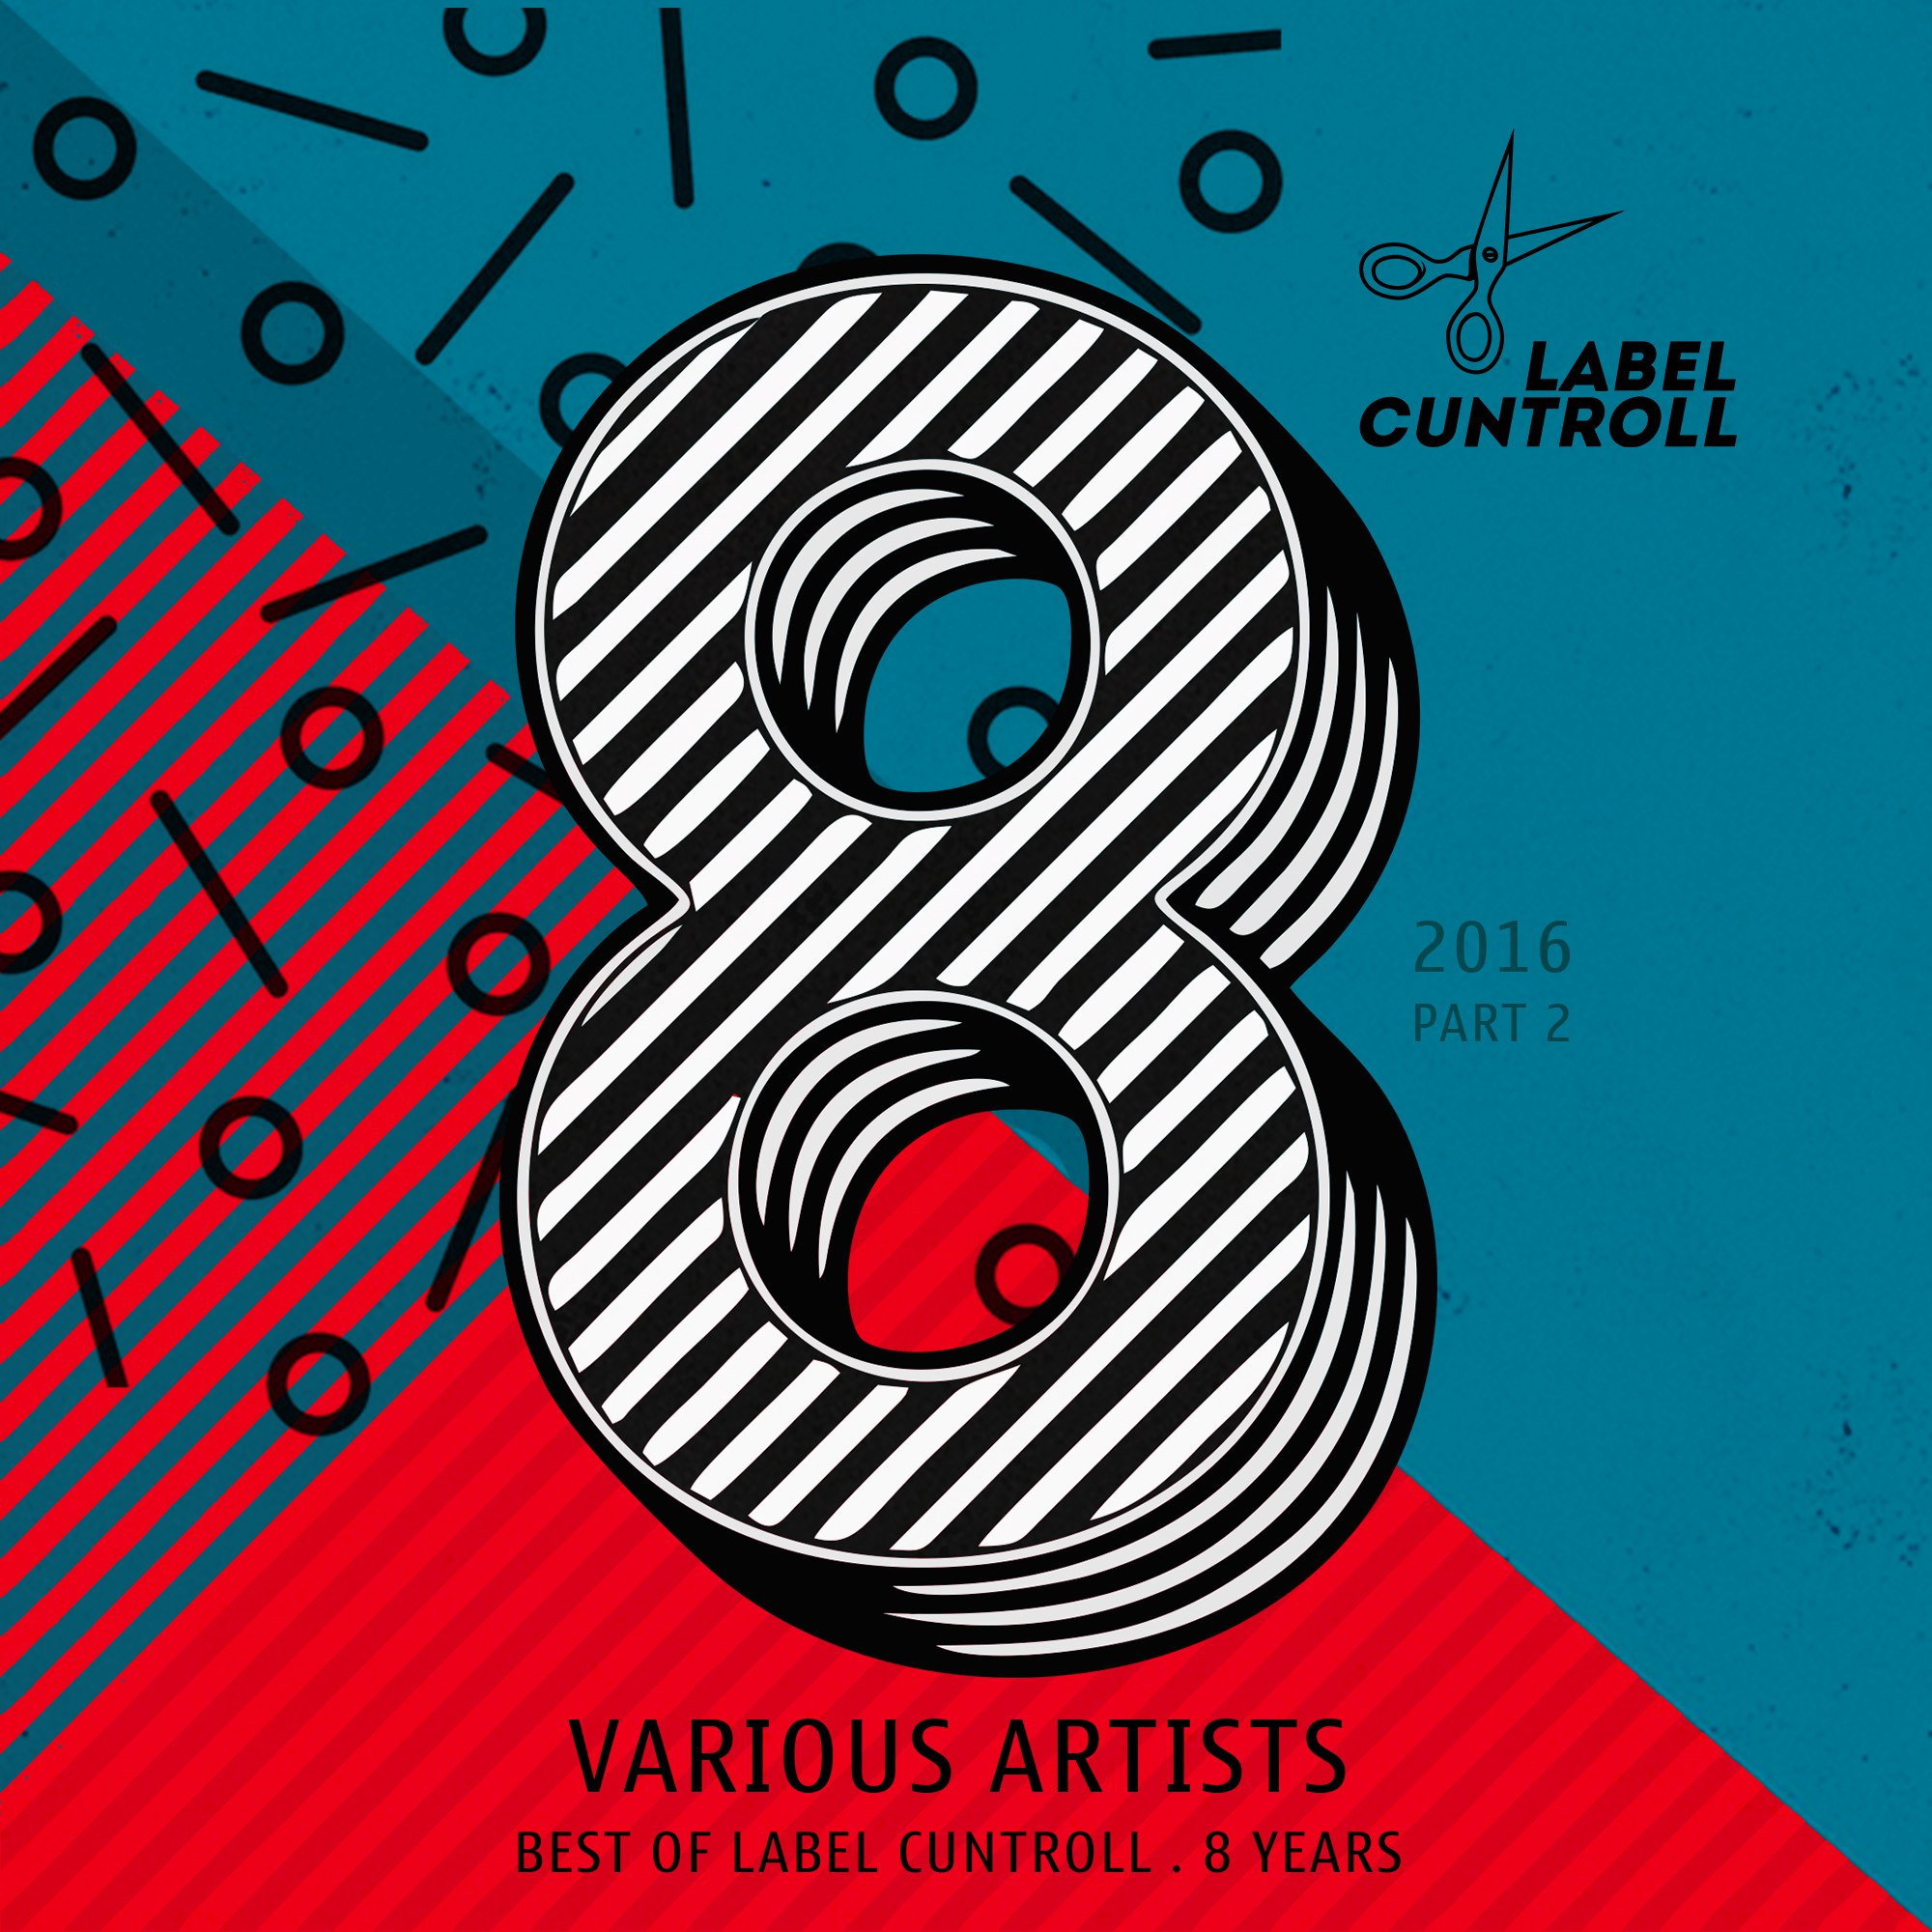 Various Artists — Best of Label Cuntroll (part 2) (2016)